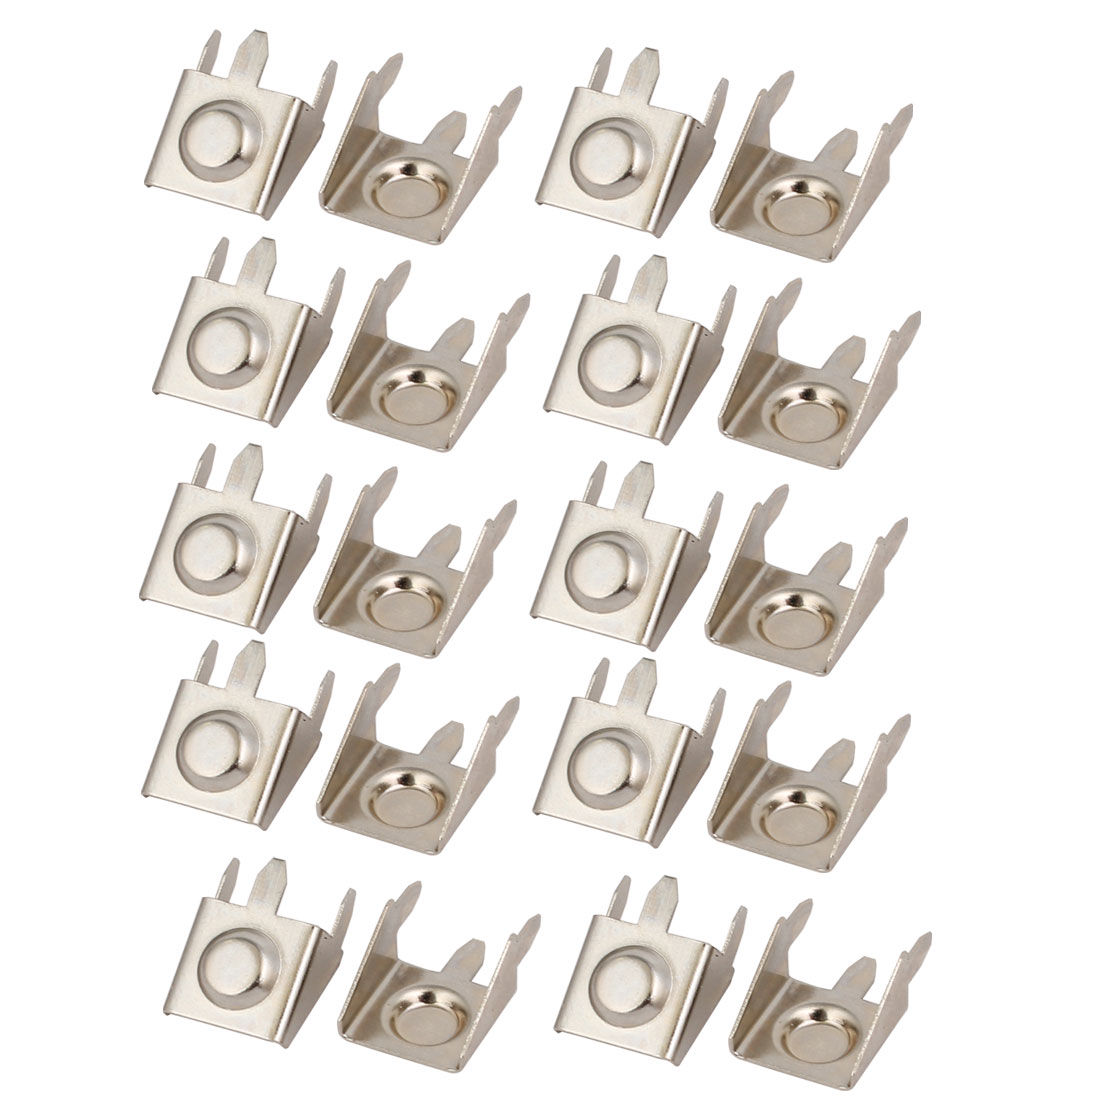 20Pcs Silver Tone Metal AAA/N/12V Battery Positive Negative Contact Plate Clip